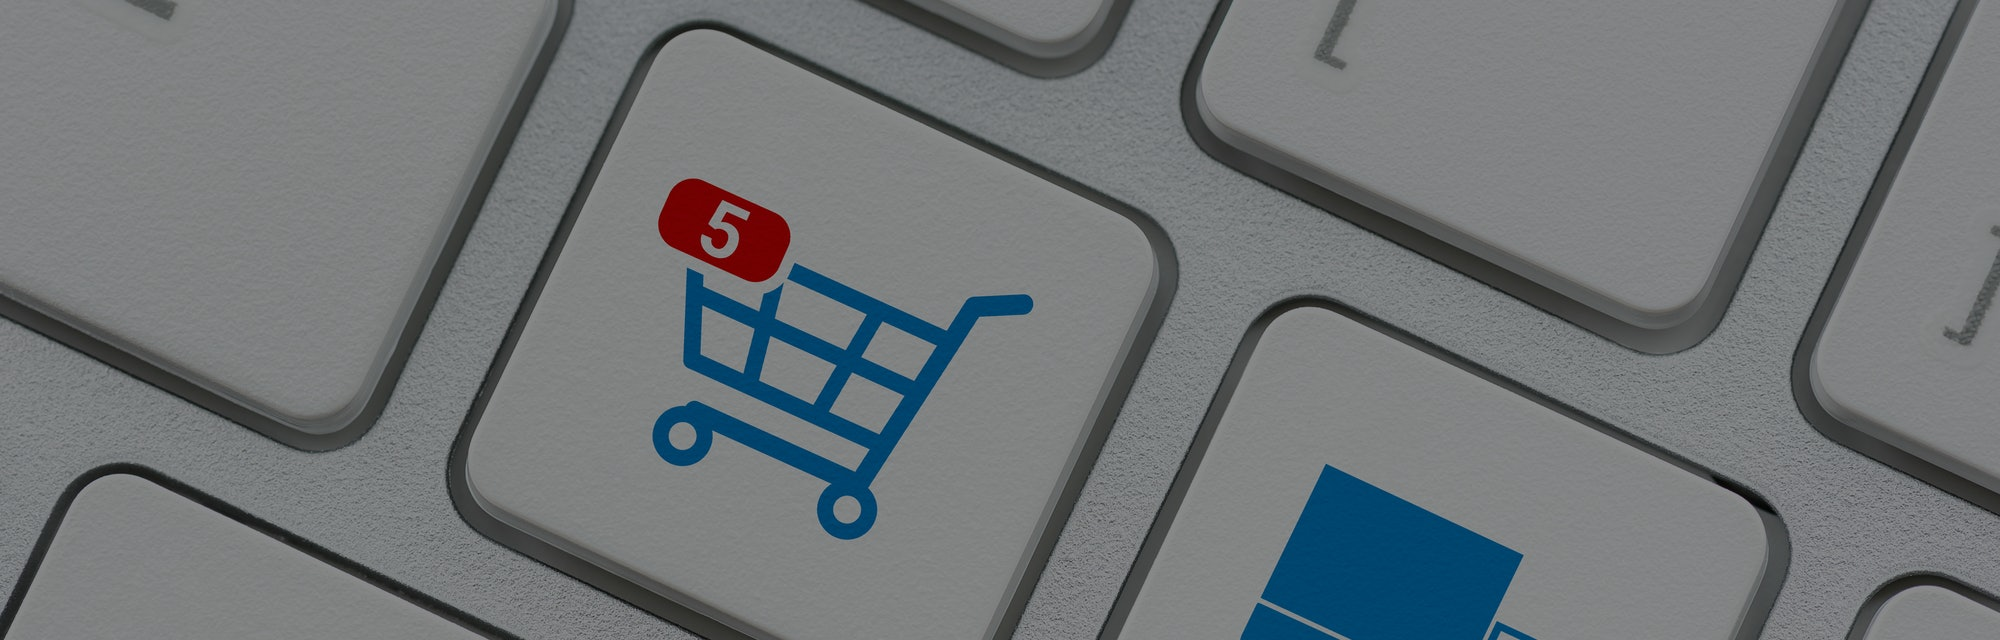 "A white and blue keyboard can be seen with symbols for different types of market actions. One key shows a cart with a red symbol for ""5"" denoting that the user has bought five items for their cart."